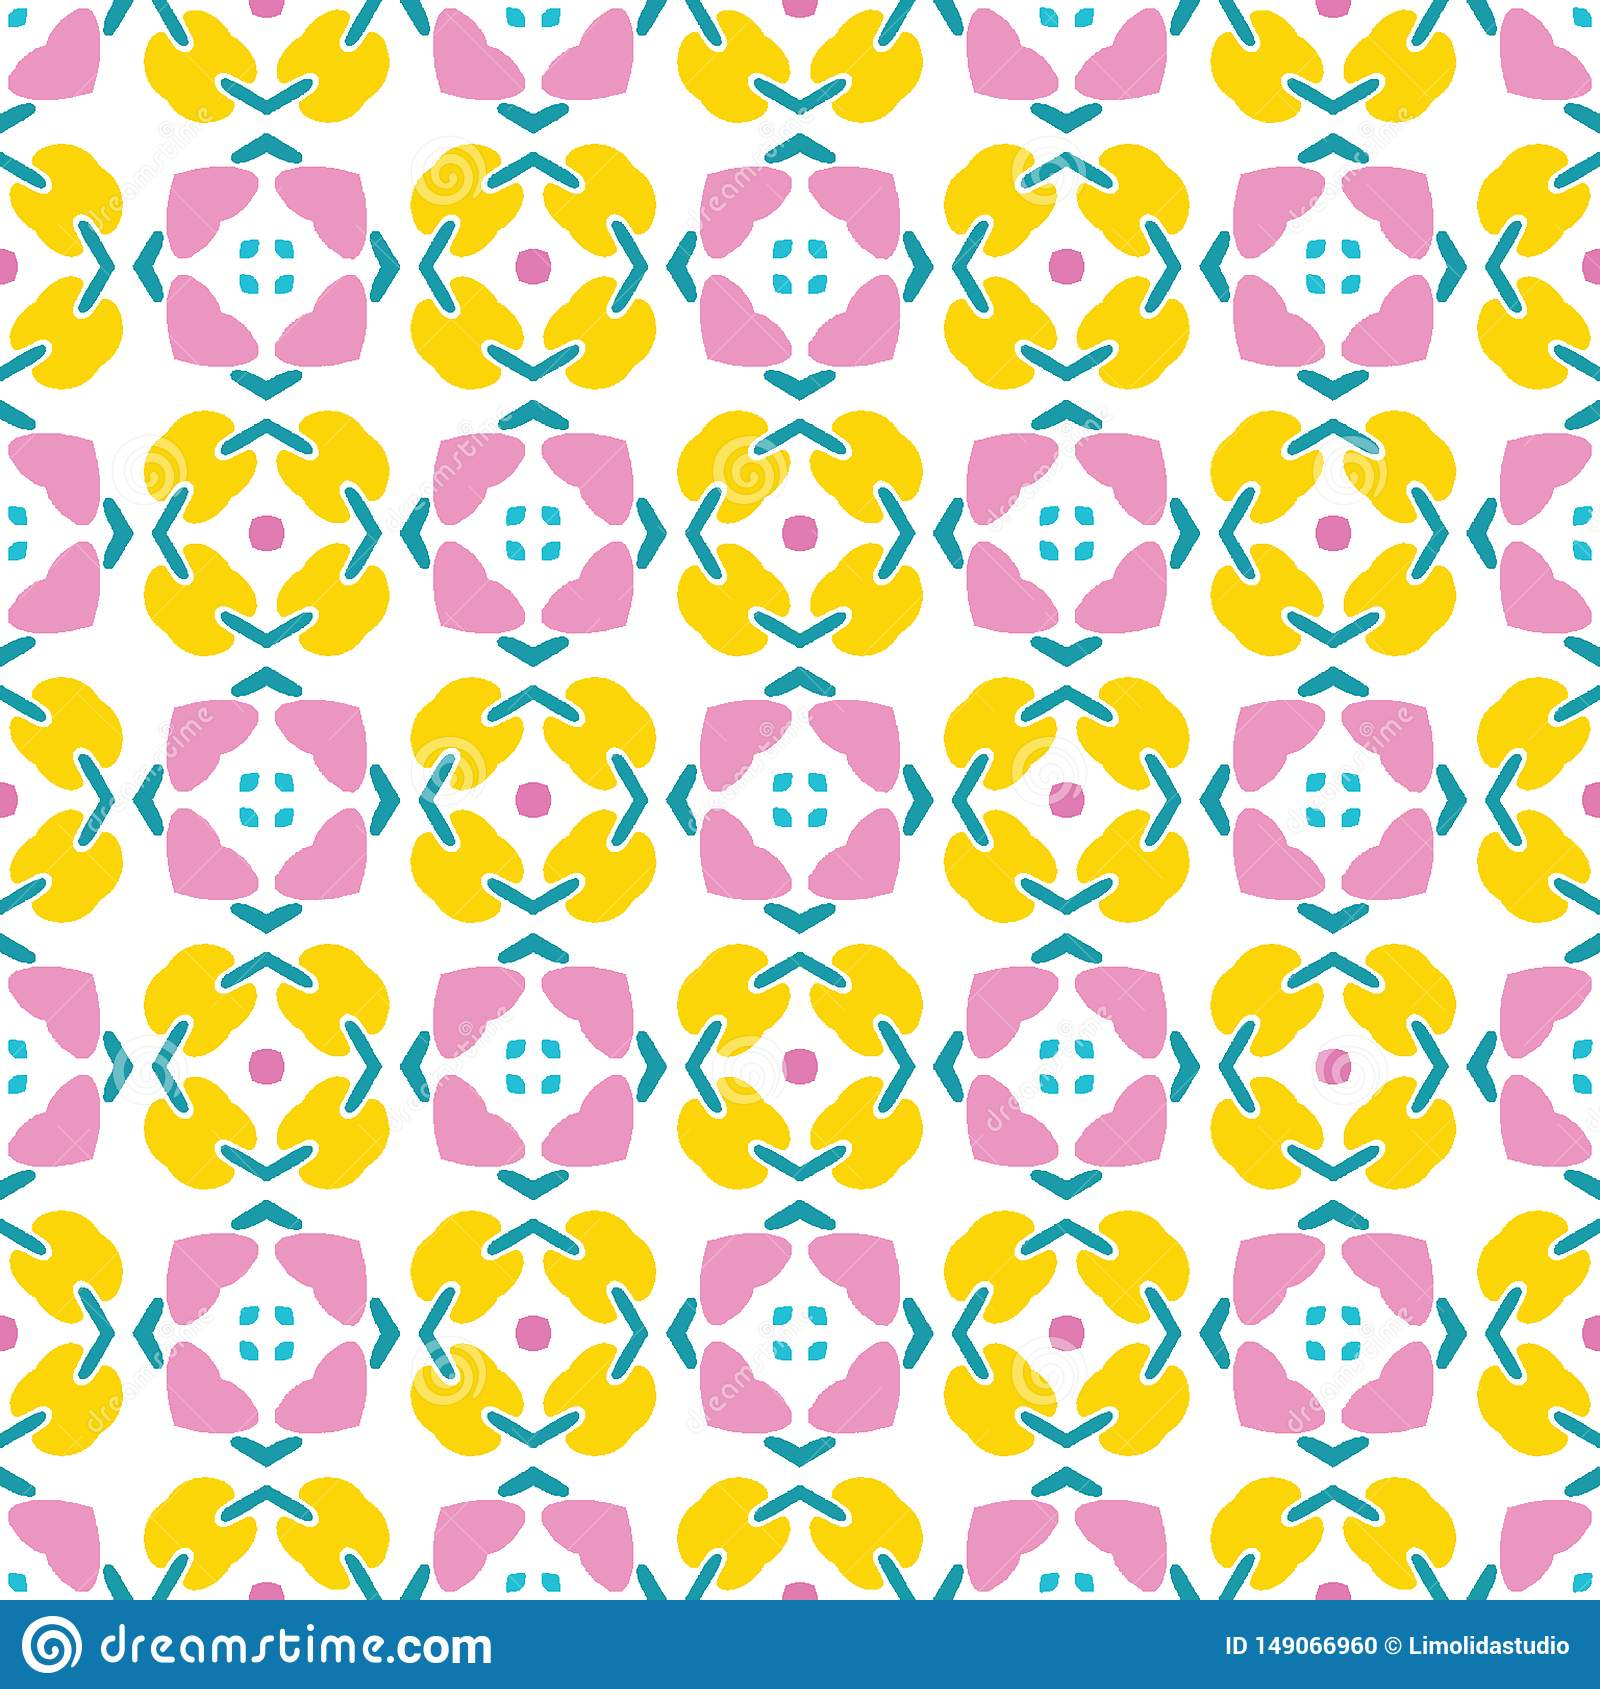 Geometric retro square shapes seamless pattern. All over print vector background. Pretty summer 1950s quilt tile fashion style.